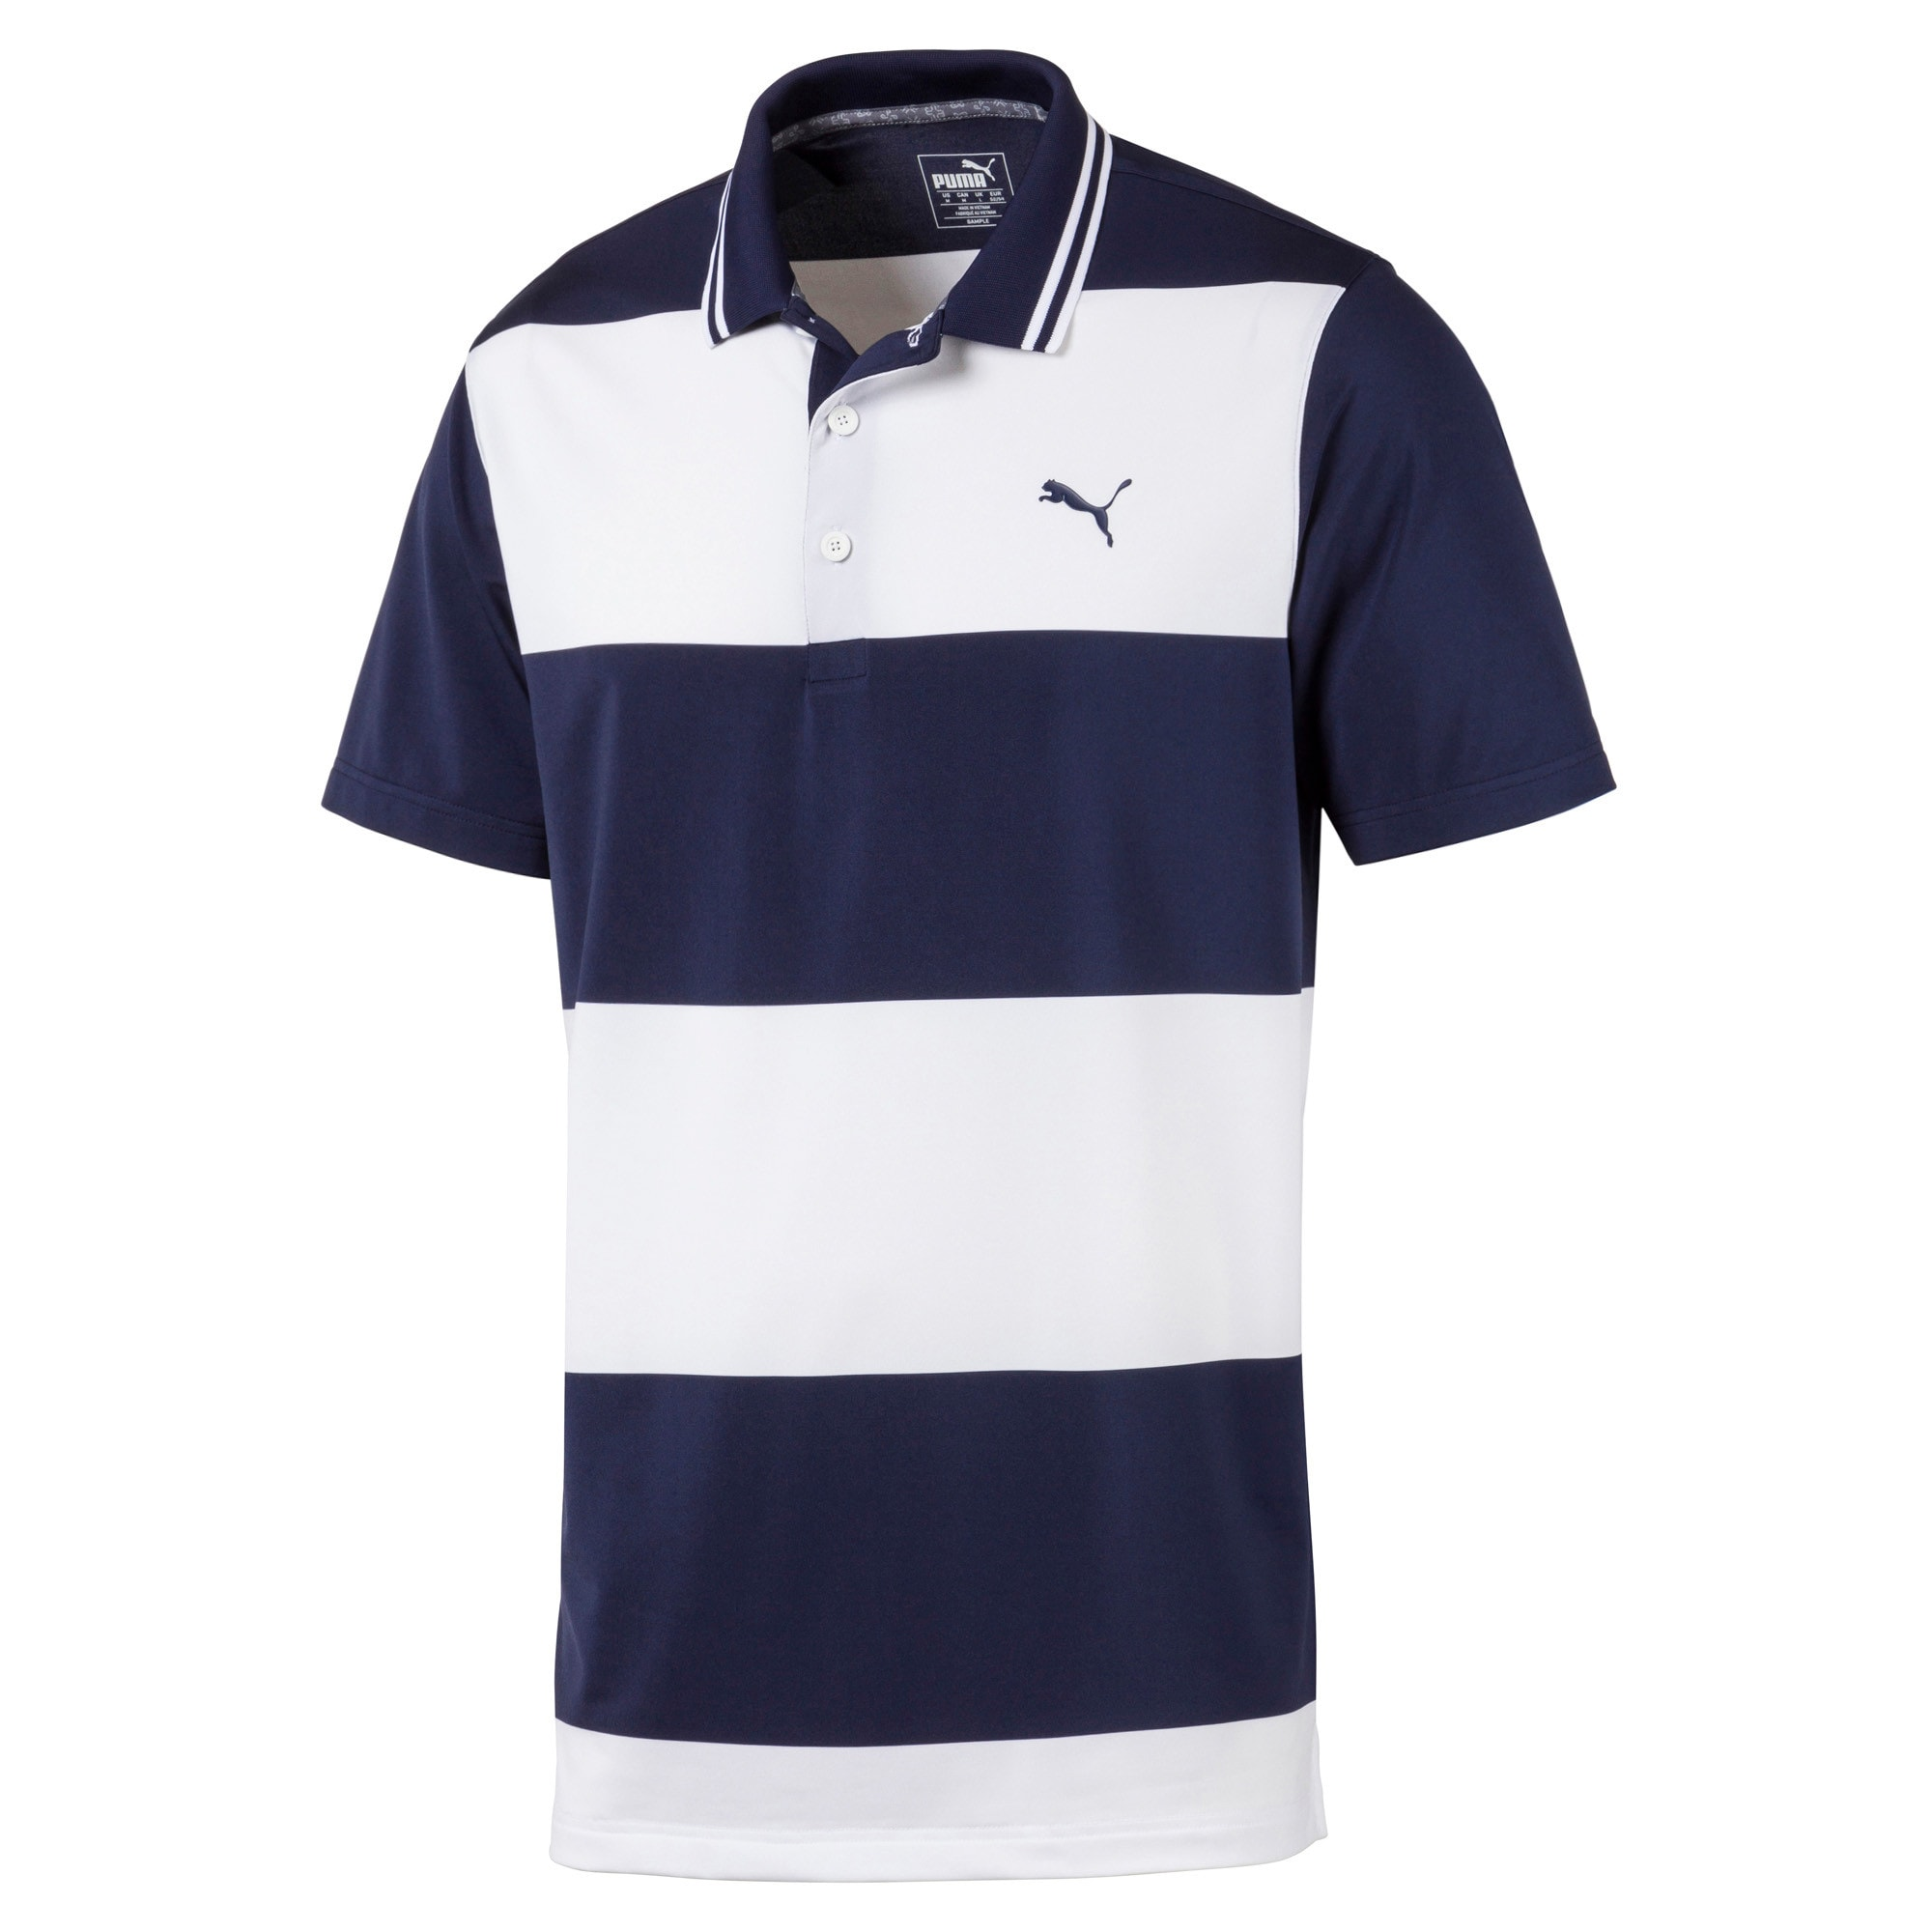 Thumbnail 4 of Rugby Men's Golf Polo, Peacoat-Bright White, medium